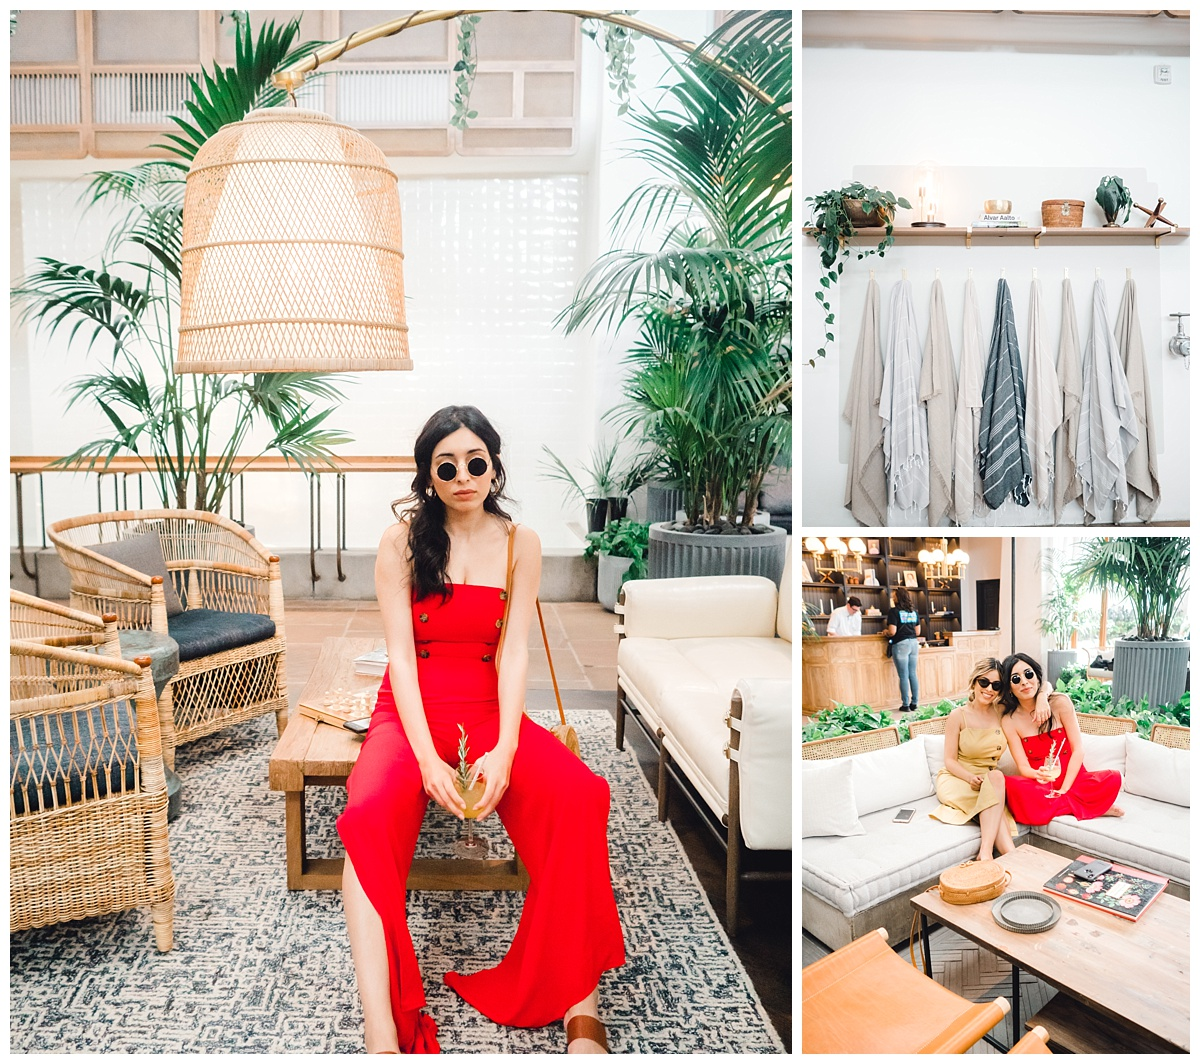 My sister! Who takes all my photos and I'm so glad we both enjoy dressing up and going to cute places like this! So lucky to have a photographer sister in my life ;p Check out her website,  Click here and her Instagram is: @ushnakhanphotography